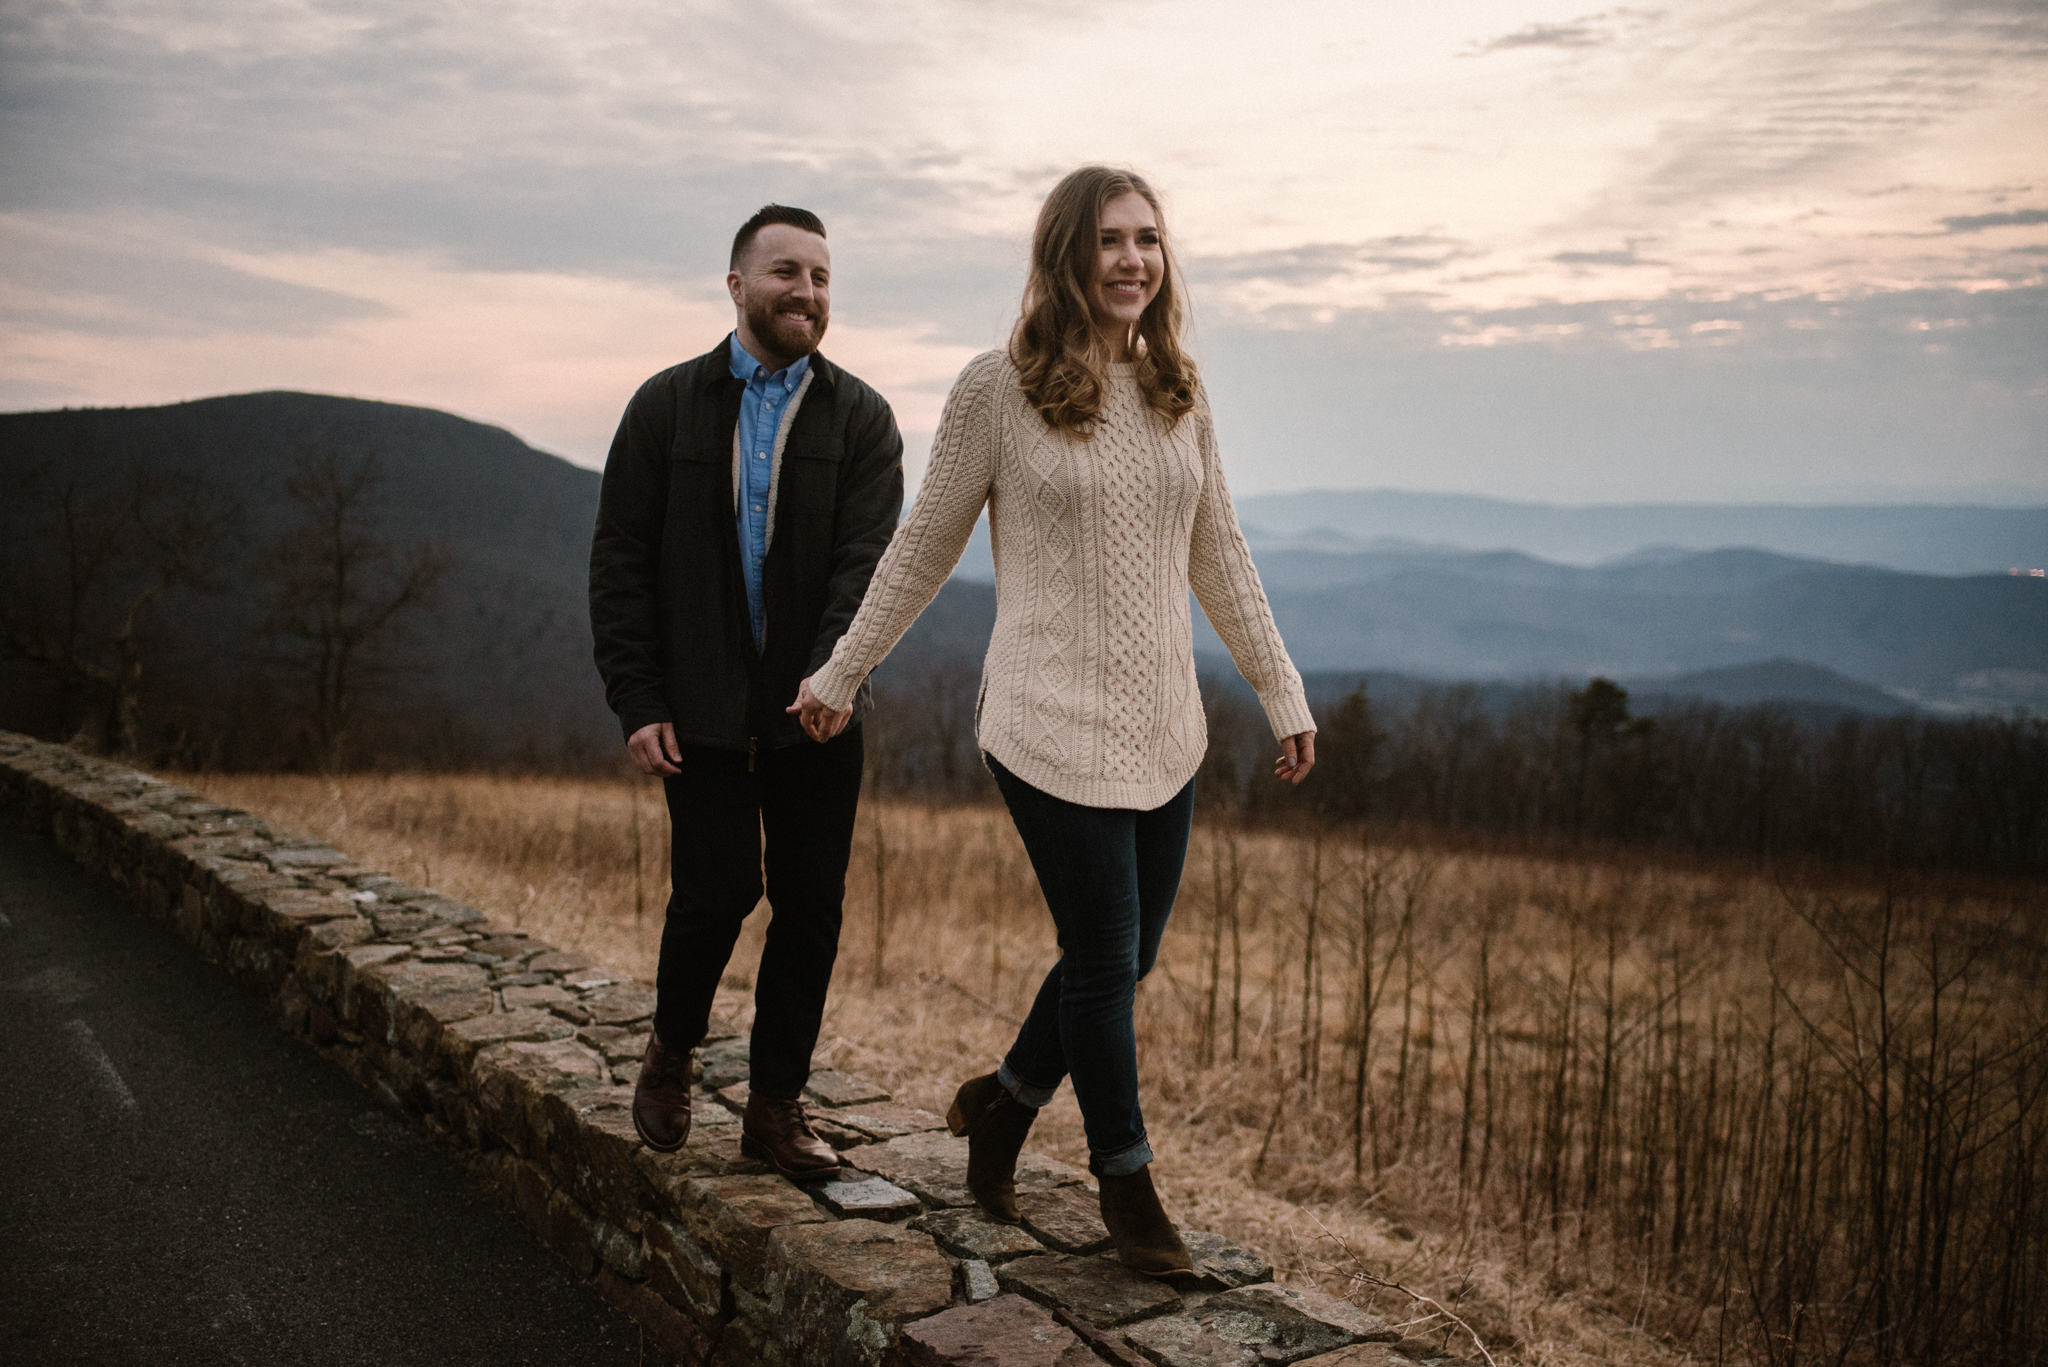 Nicole and Victor - Shenandoah National Park Engagement Photography - Blue Ridge Mountains Adventure Photography - White Sails Creative Photography_50.jpg